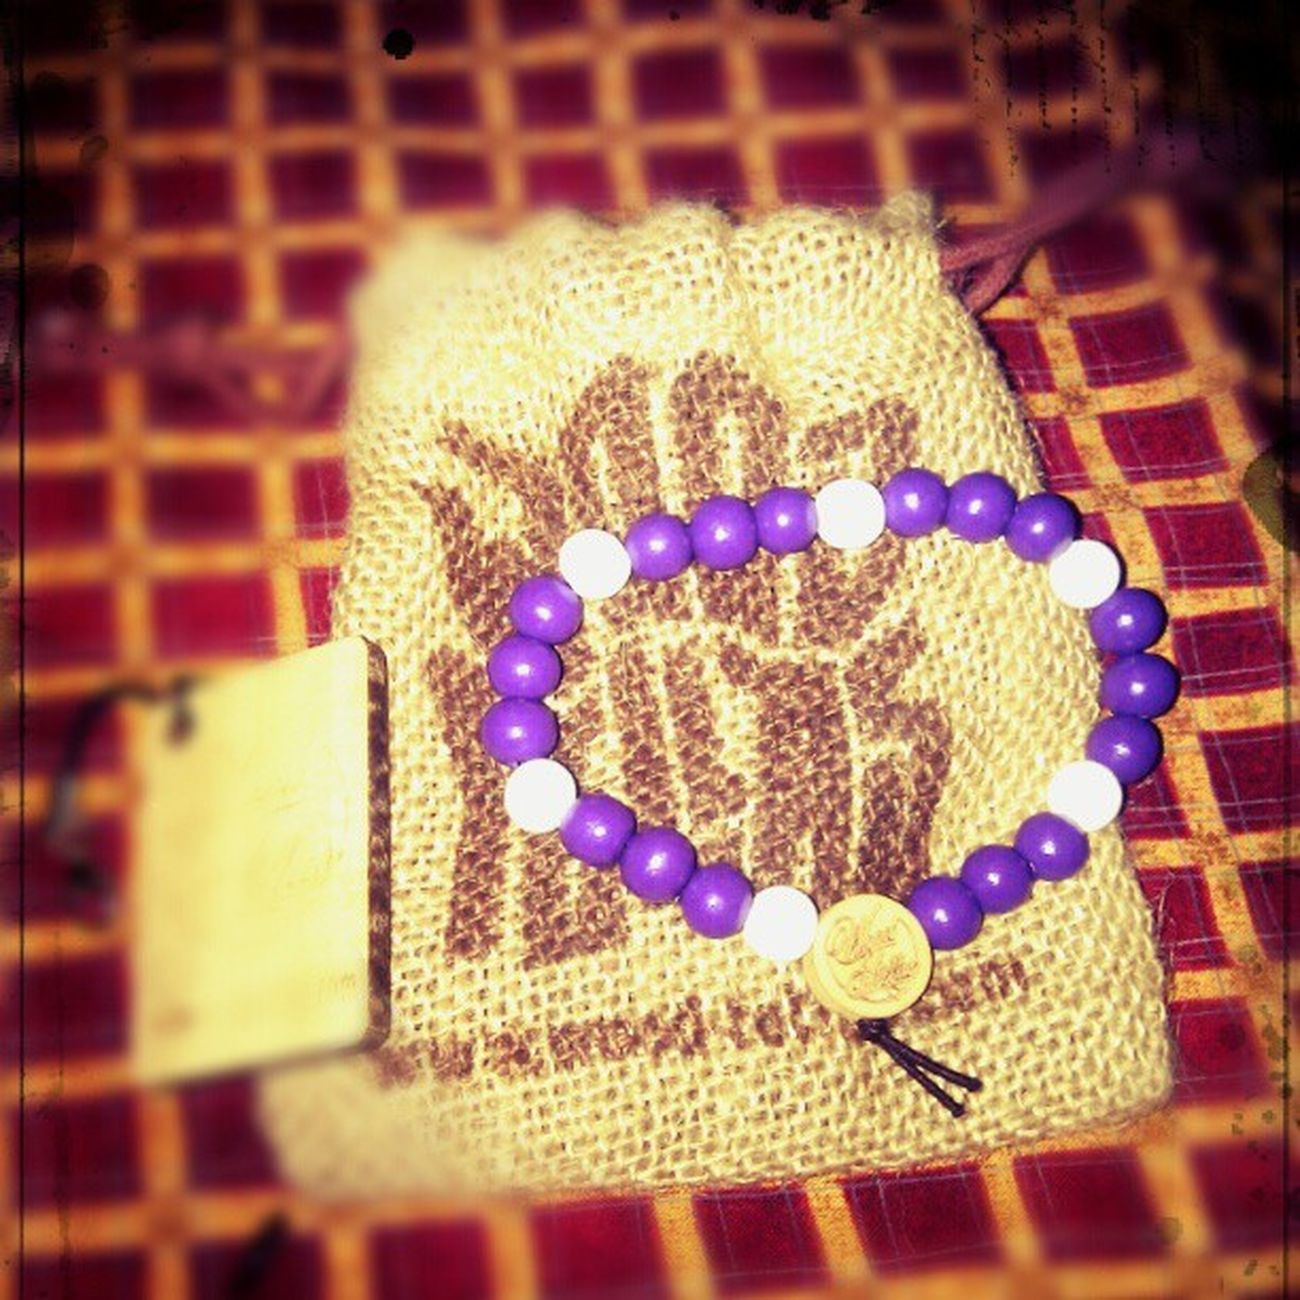 My first birthday gift from @naranarusha :)) Birthdaygift Birthday Woodfellaz Woodbeads purple white